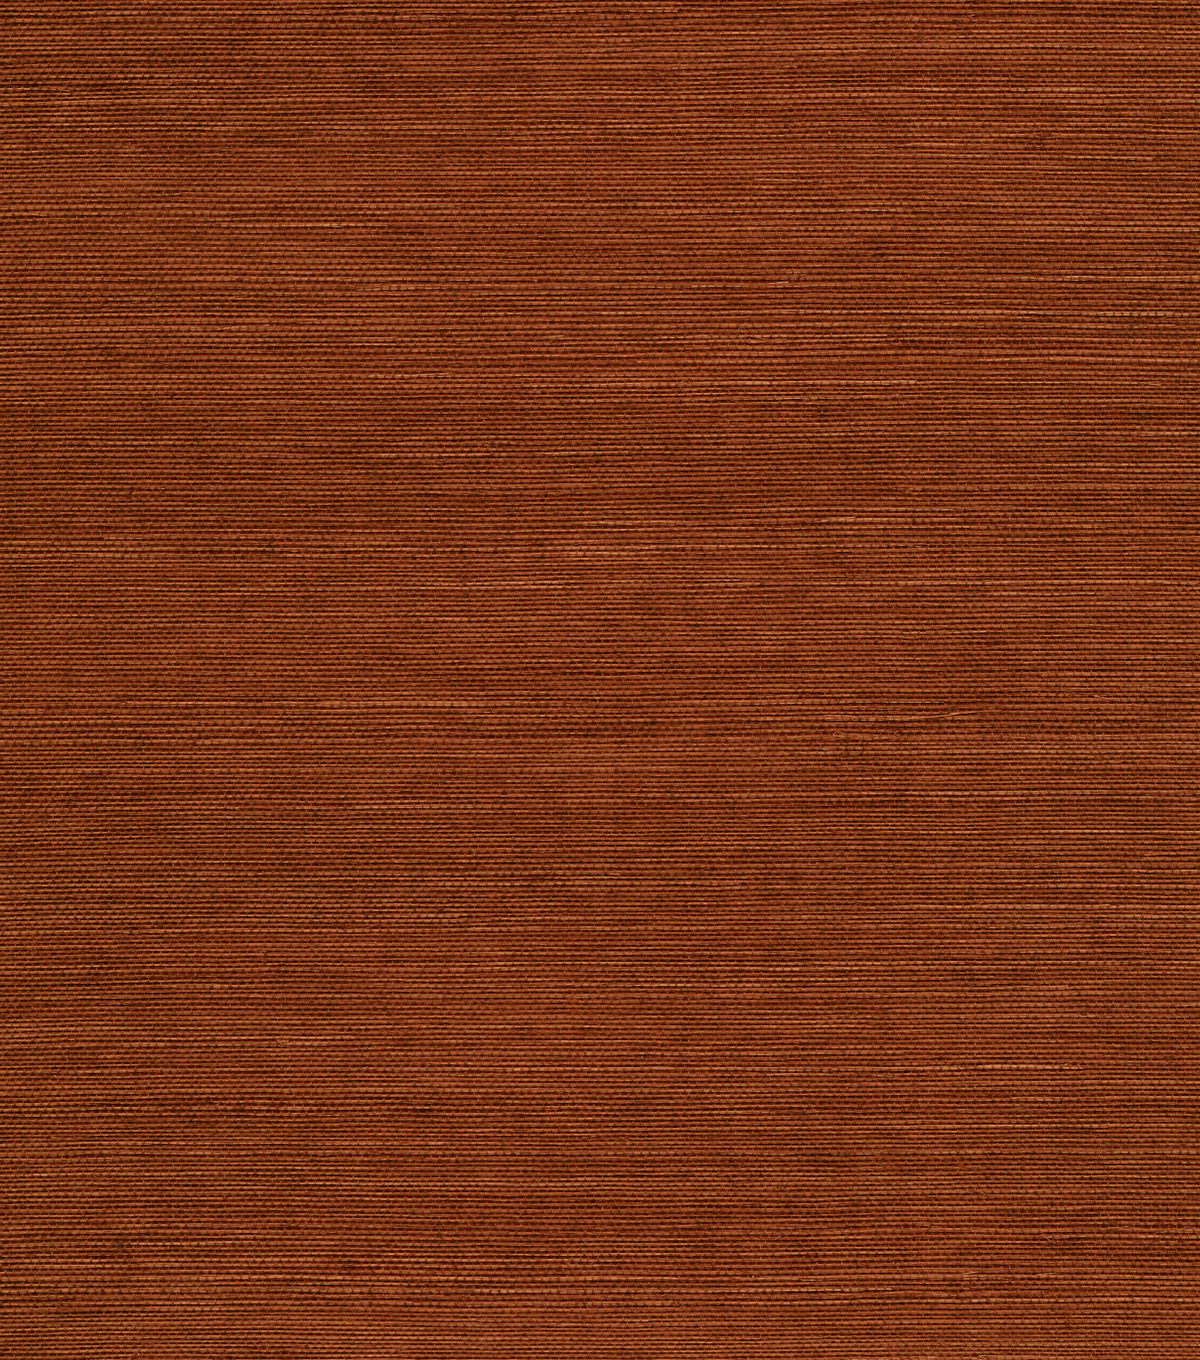 Daichi Brown Grasscloth Wallpaper Sample